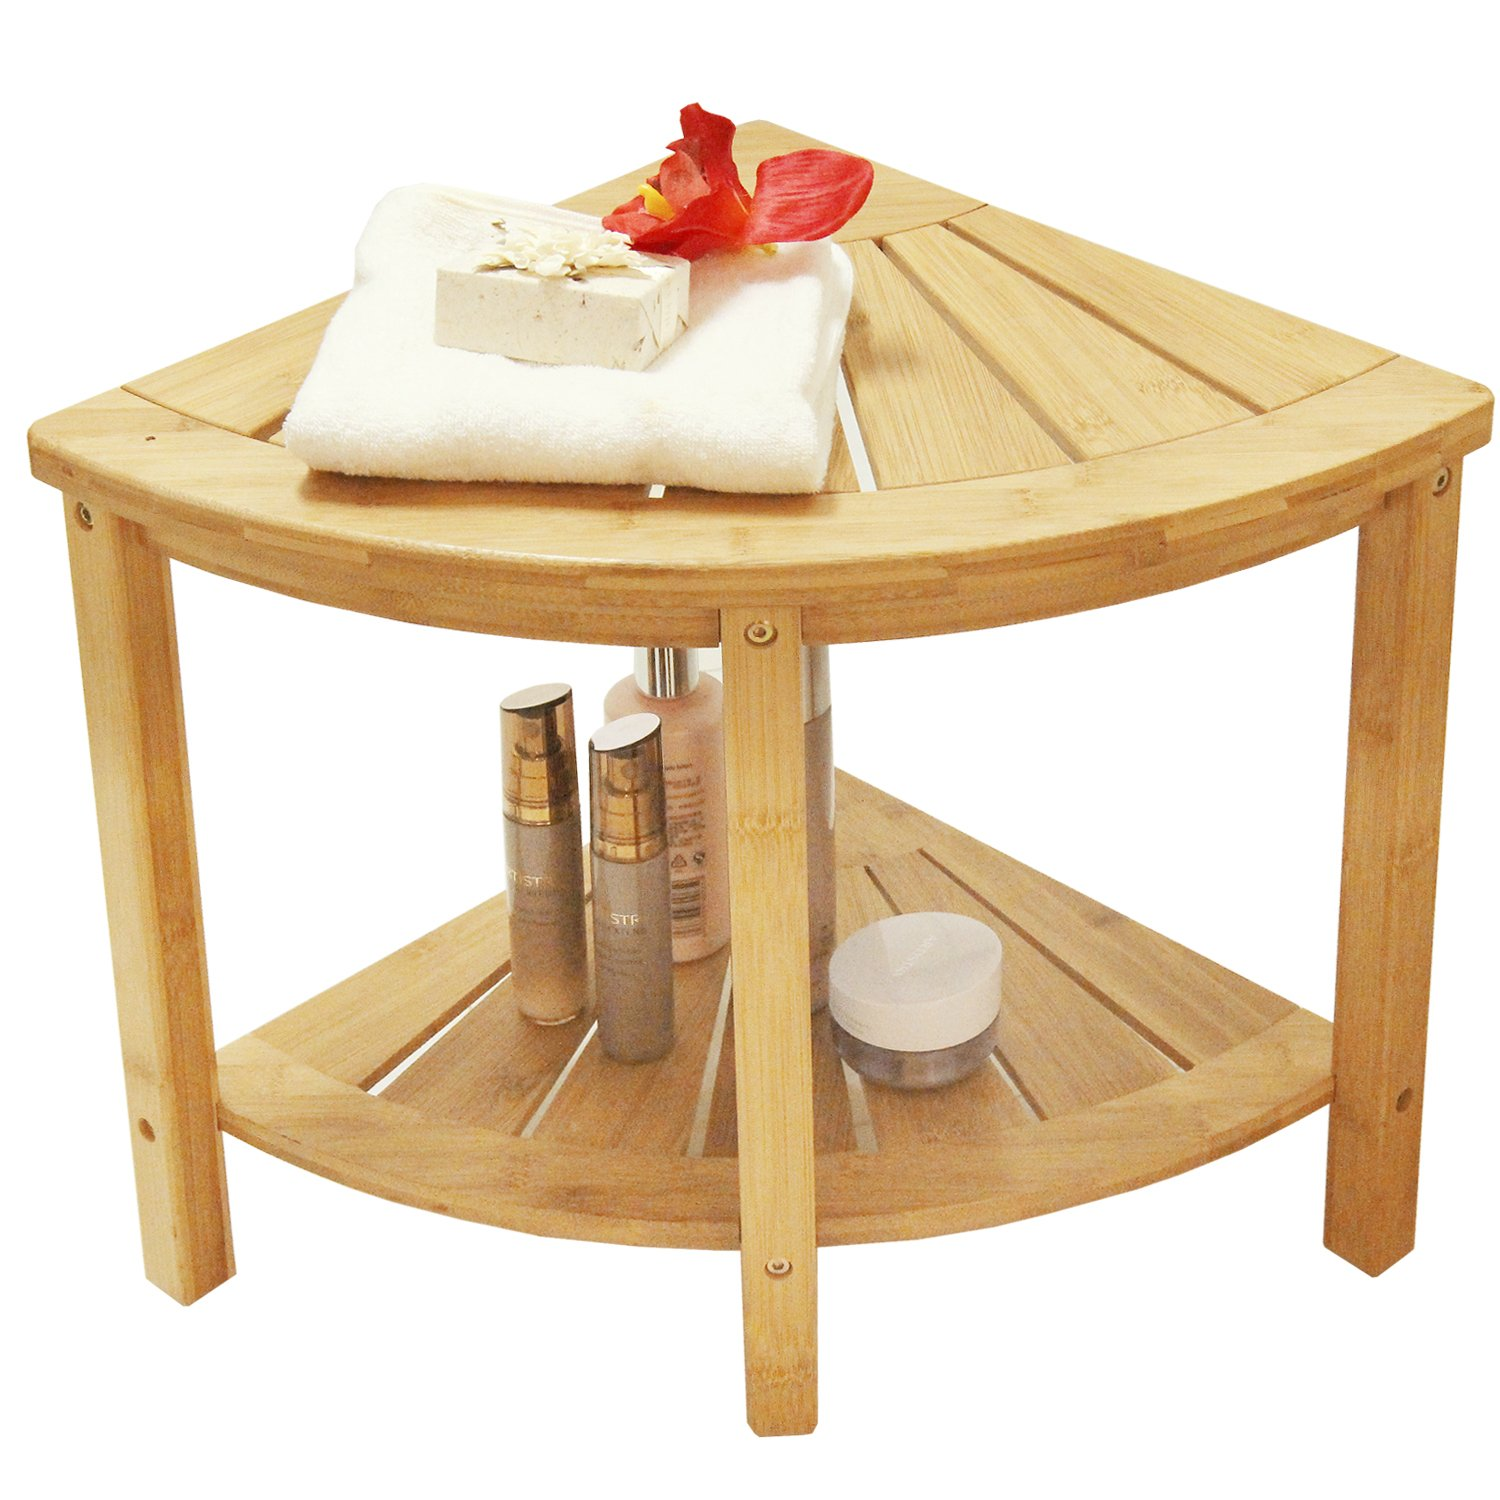 Teak Shower Bench Corner Stool Bath Spa Wood Bathroom Seat Chair ...